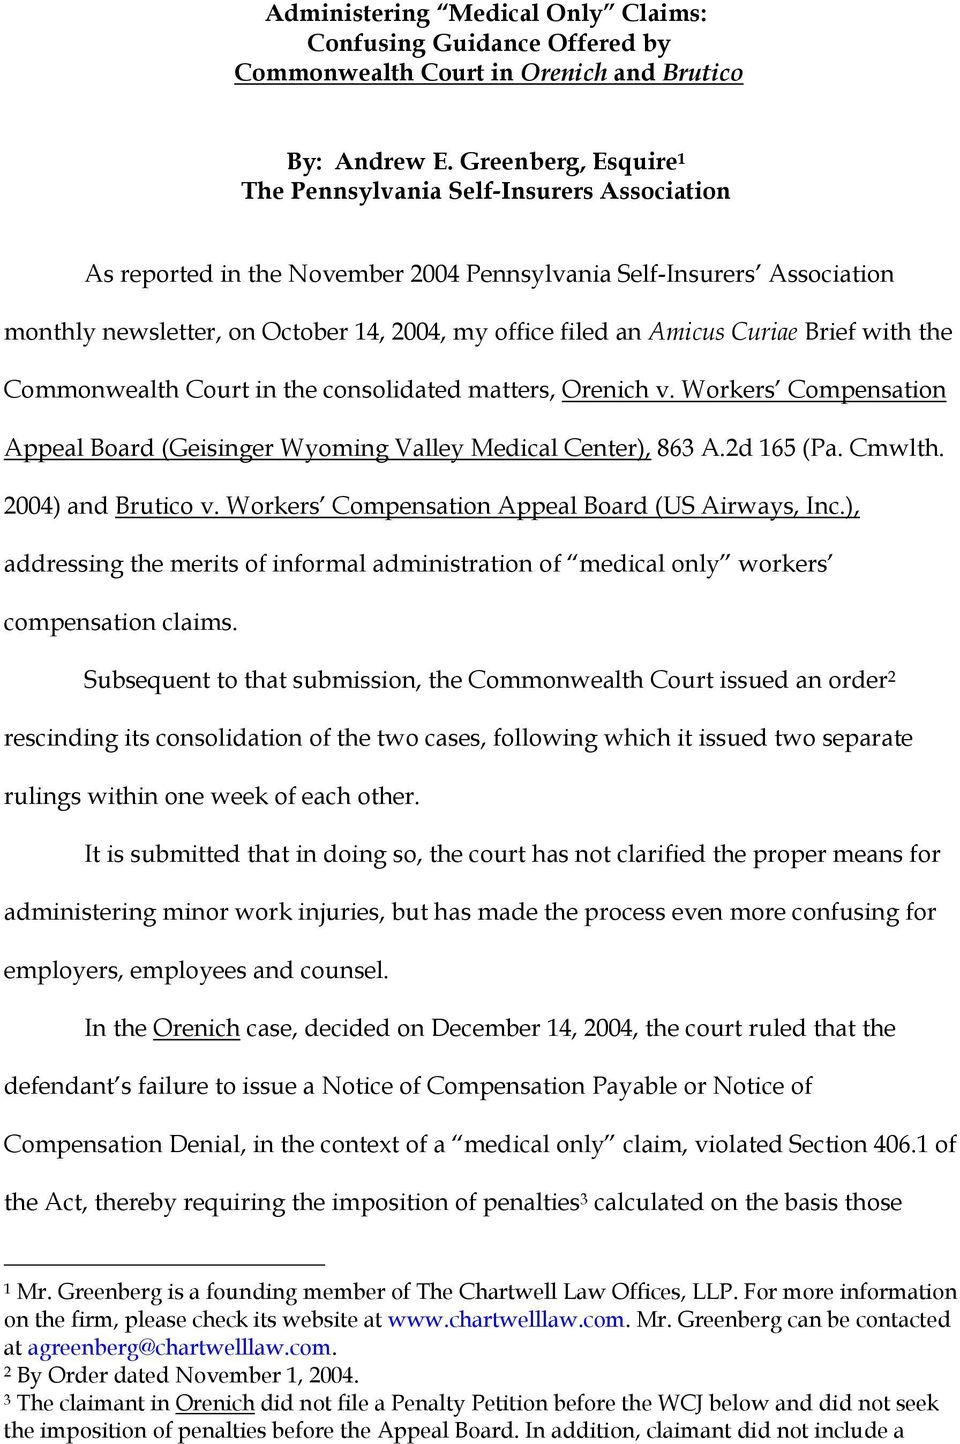 Amicus Curiae Brief with the Commonwealth Court in the consolidated matters, Orenich v. Workers Compensation Appeal Board (Geisinger Wyoming Valley Medical Center), 863 A.2d 165 (Pa. Cmwlth.